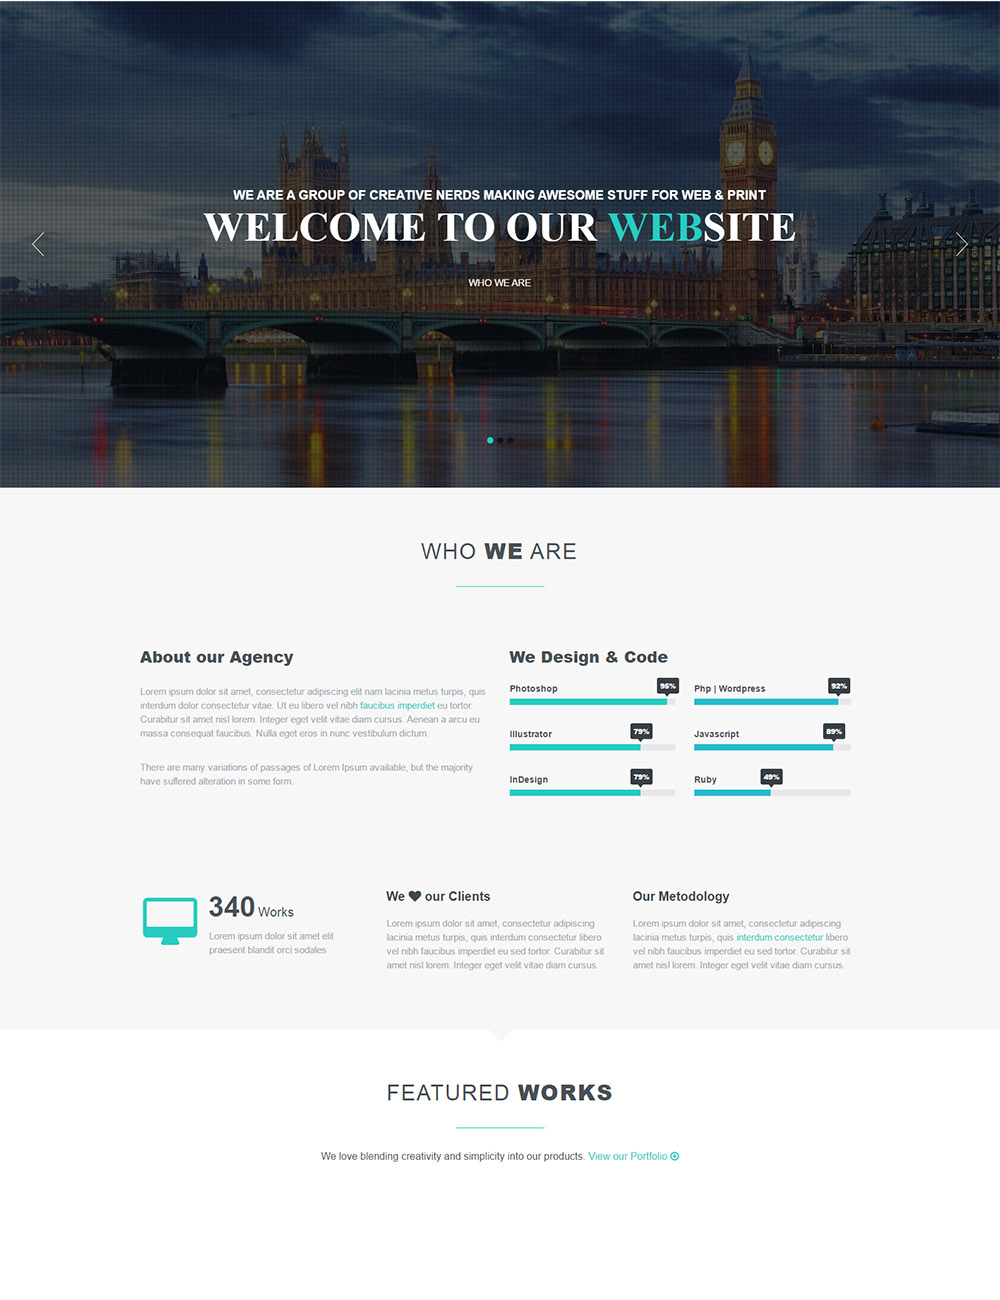 Mẫu website du lịch London comp-2016-002